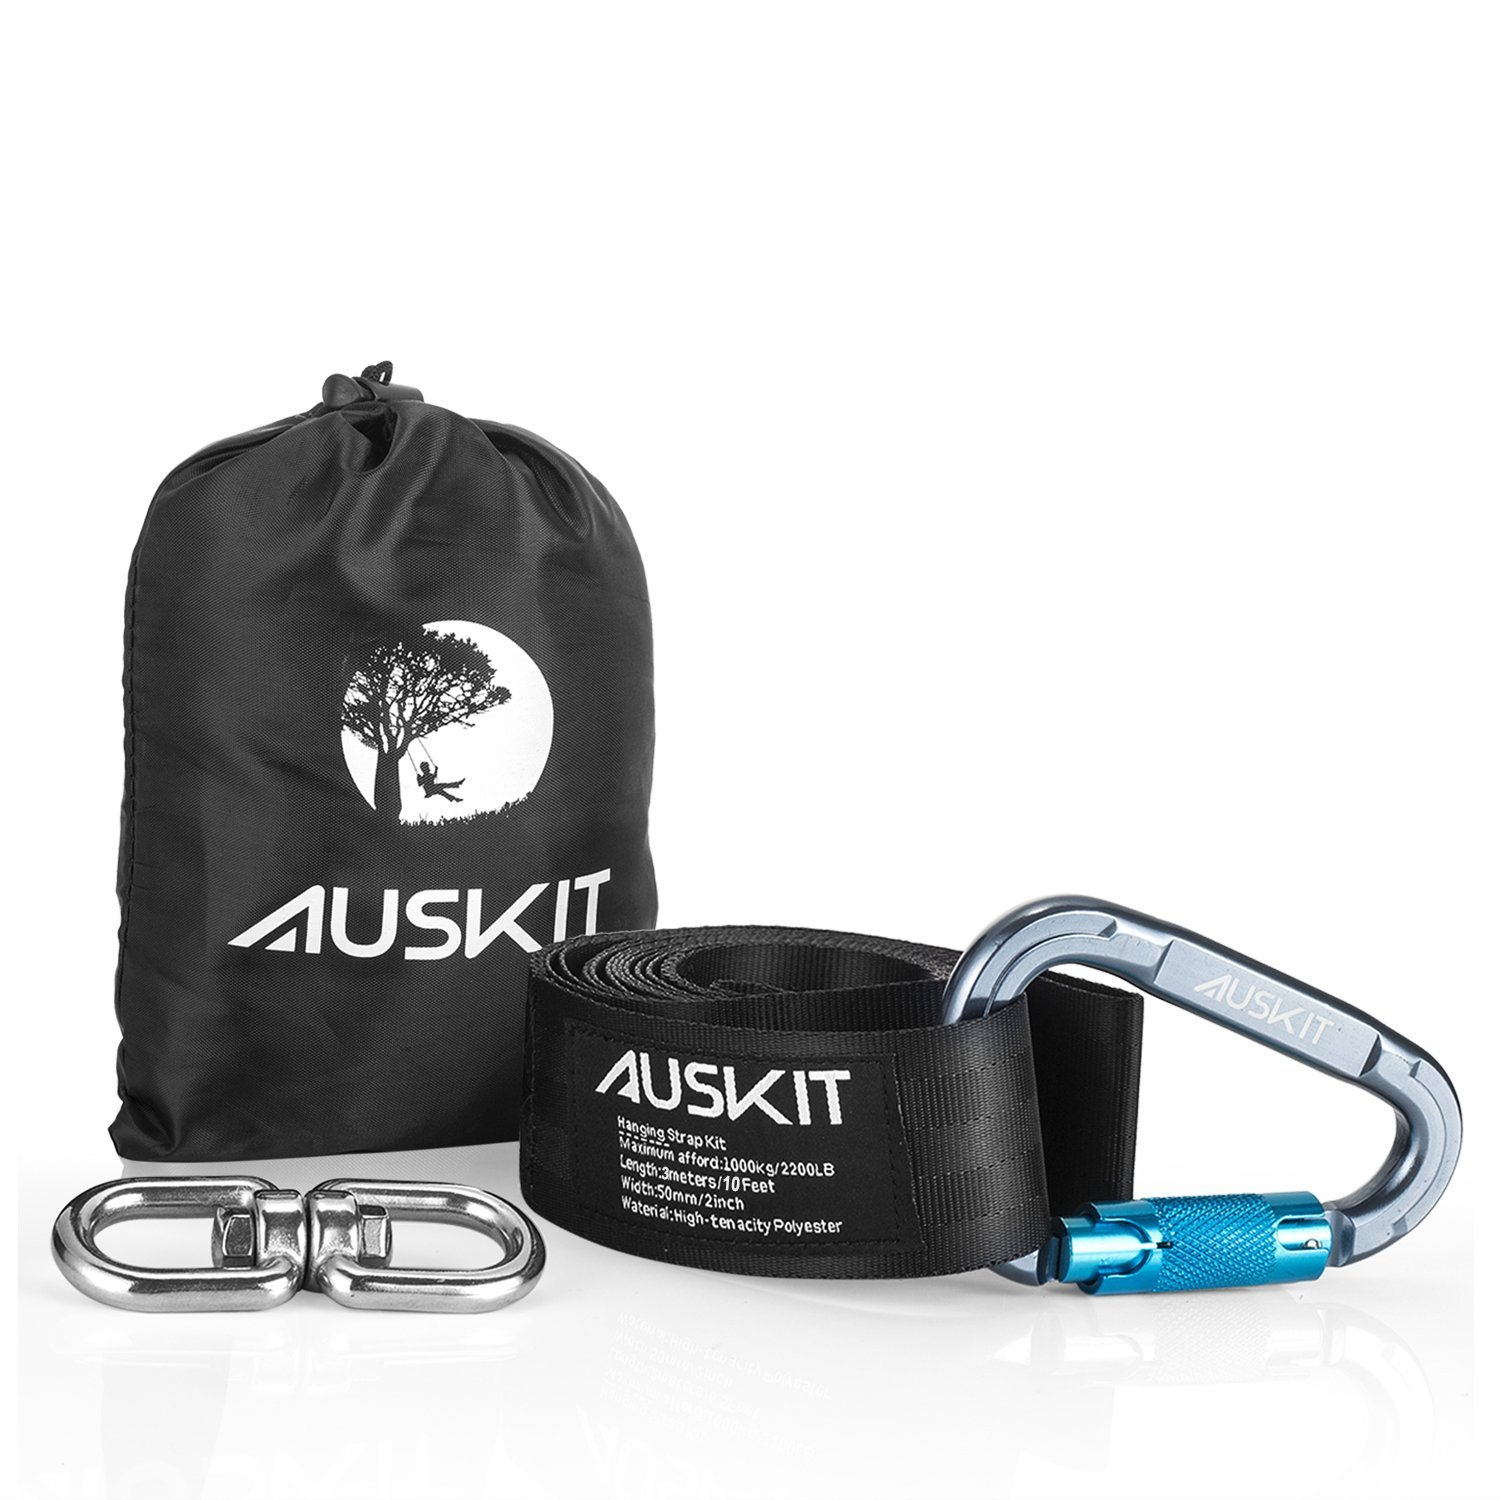 Tree Swing Hanging Strap Kit, AusKit Swing Strap(10 FT) with Screw Lock Snap Carabiner Hook and Heavy Duty Double Loop Spinning Swivel,Easy Installation and Removal On Trees